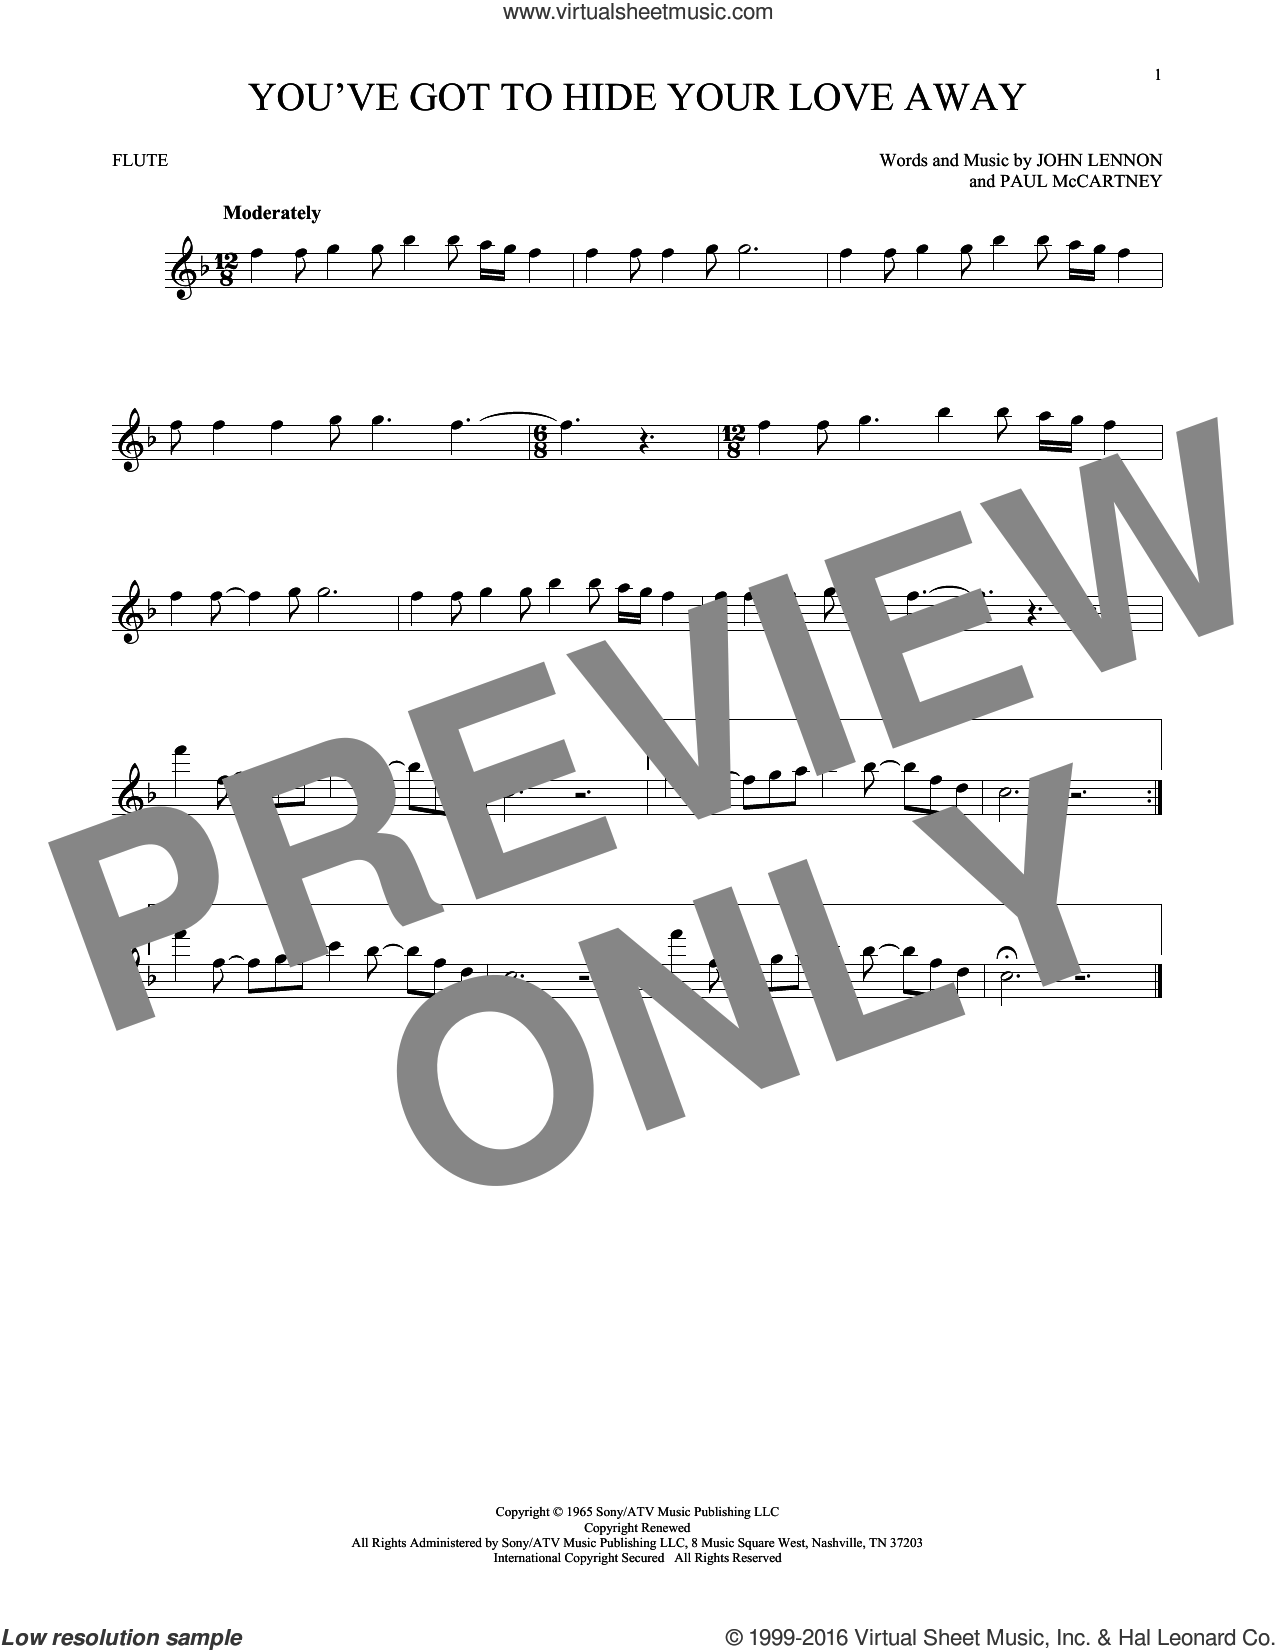 You've Got To Hide Your Love Away sheet music for flute solo by The Beatles, John Lennon and Paul McCartney, intermediate. Score Image Preview.